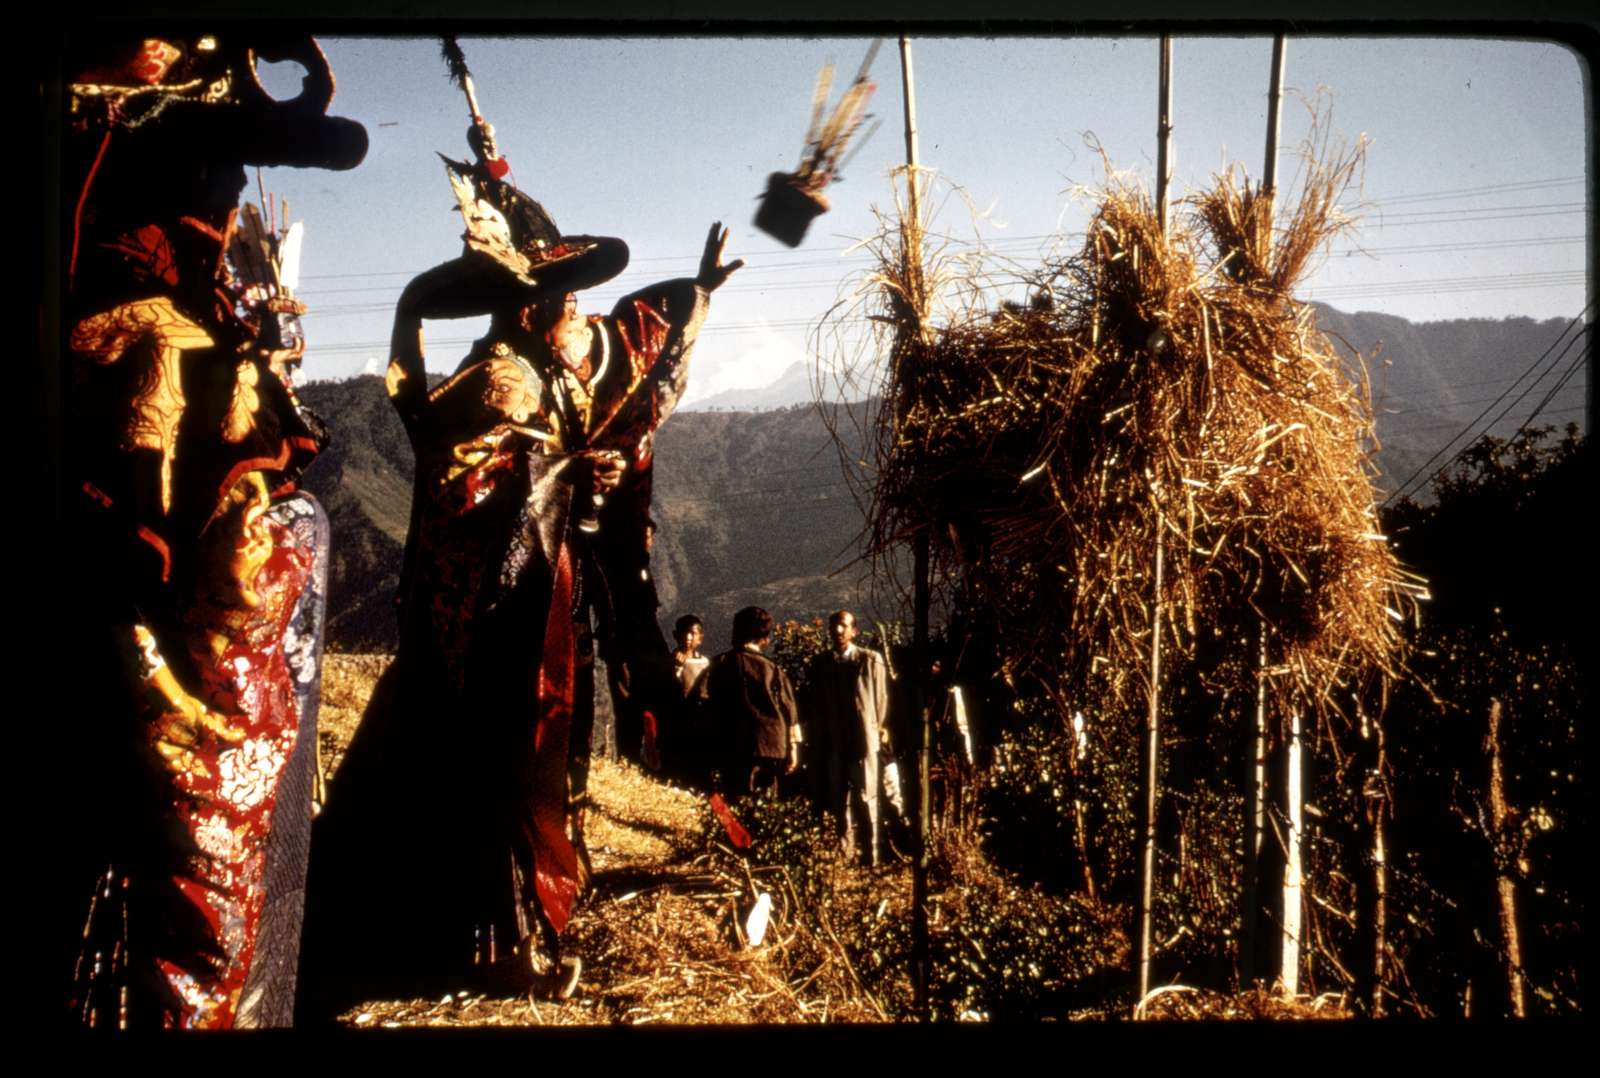 [Black Hat Lama throwing religious sacrifice into fire to destroy evil for the New Year, Sikkim]